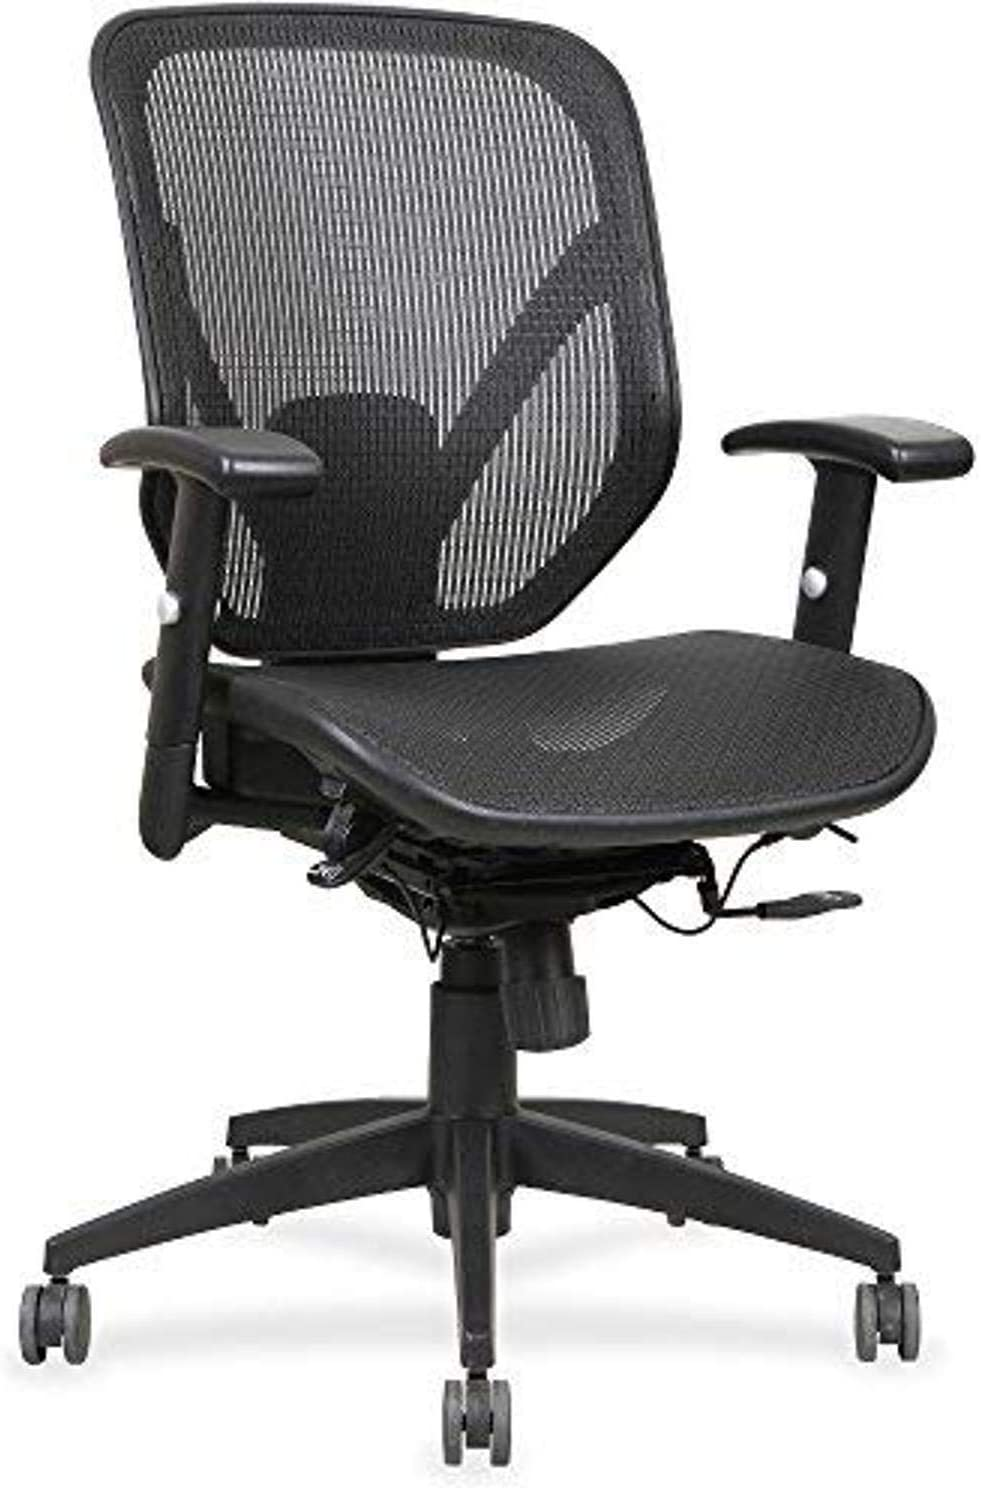 Lorell Mesh Seat/Back Mid-Back Chair, Black